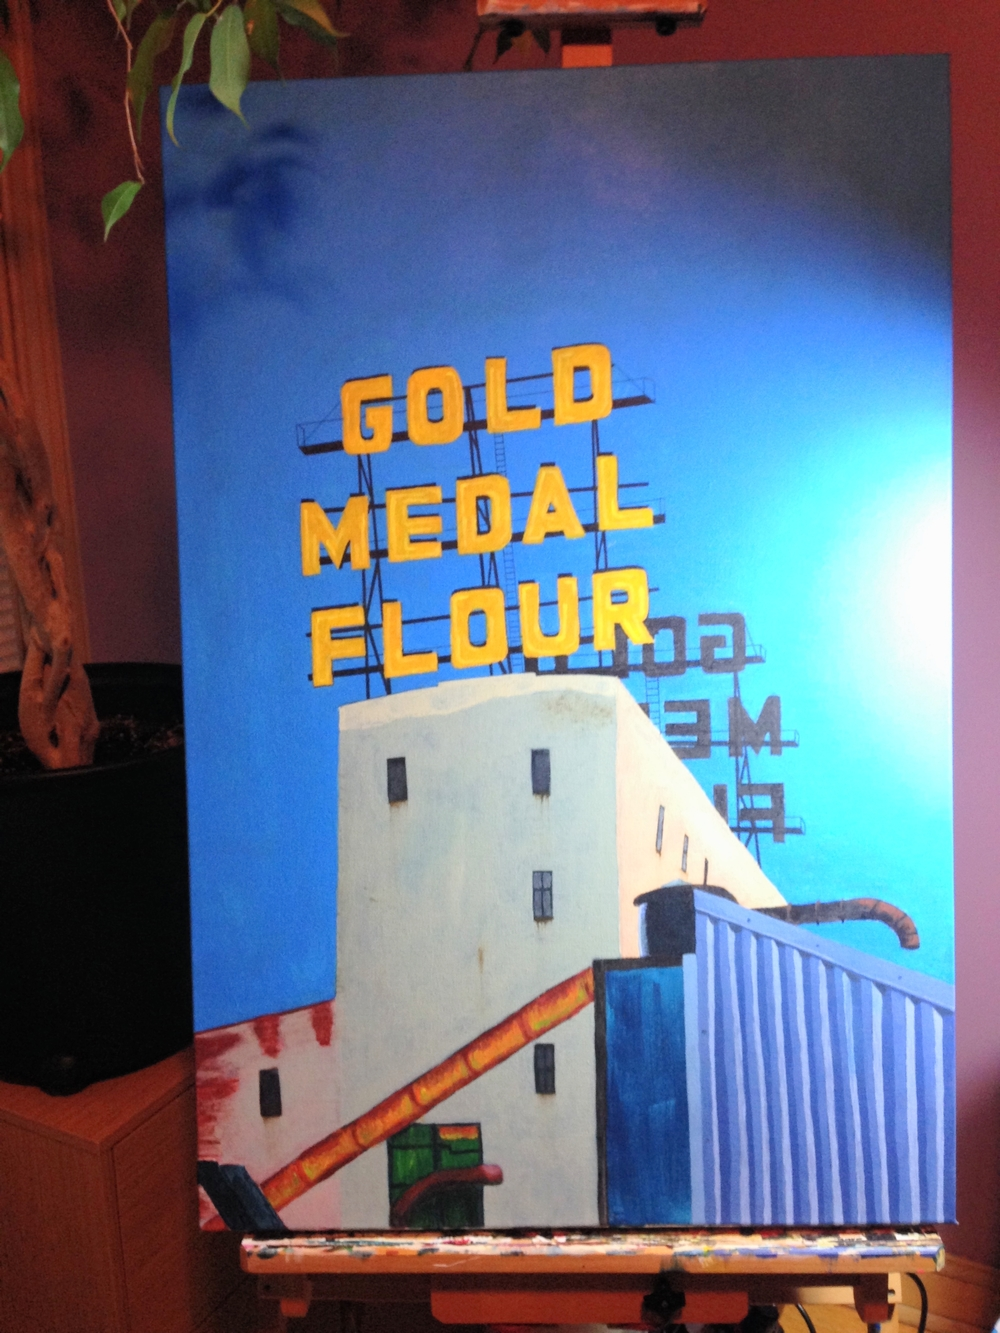 Gold Metal Flour sign